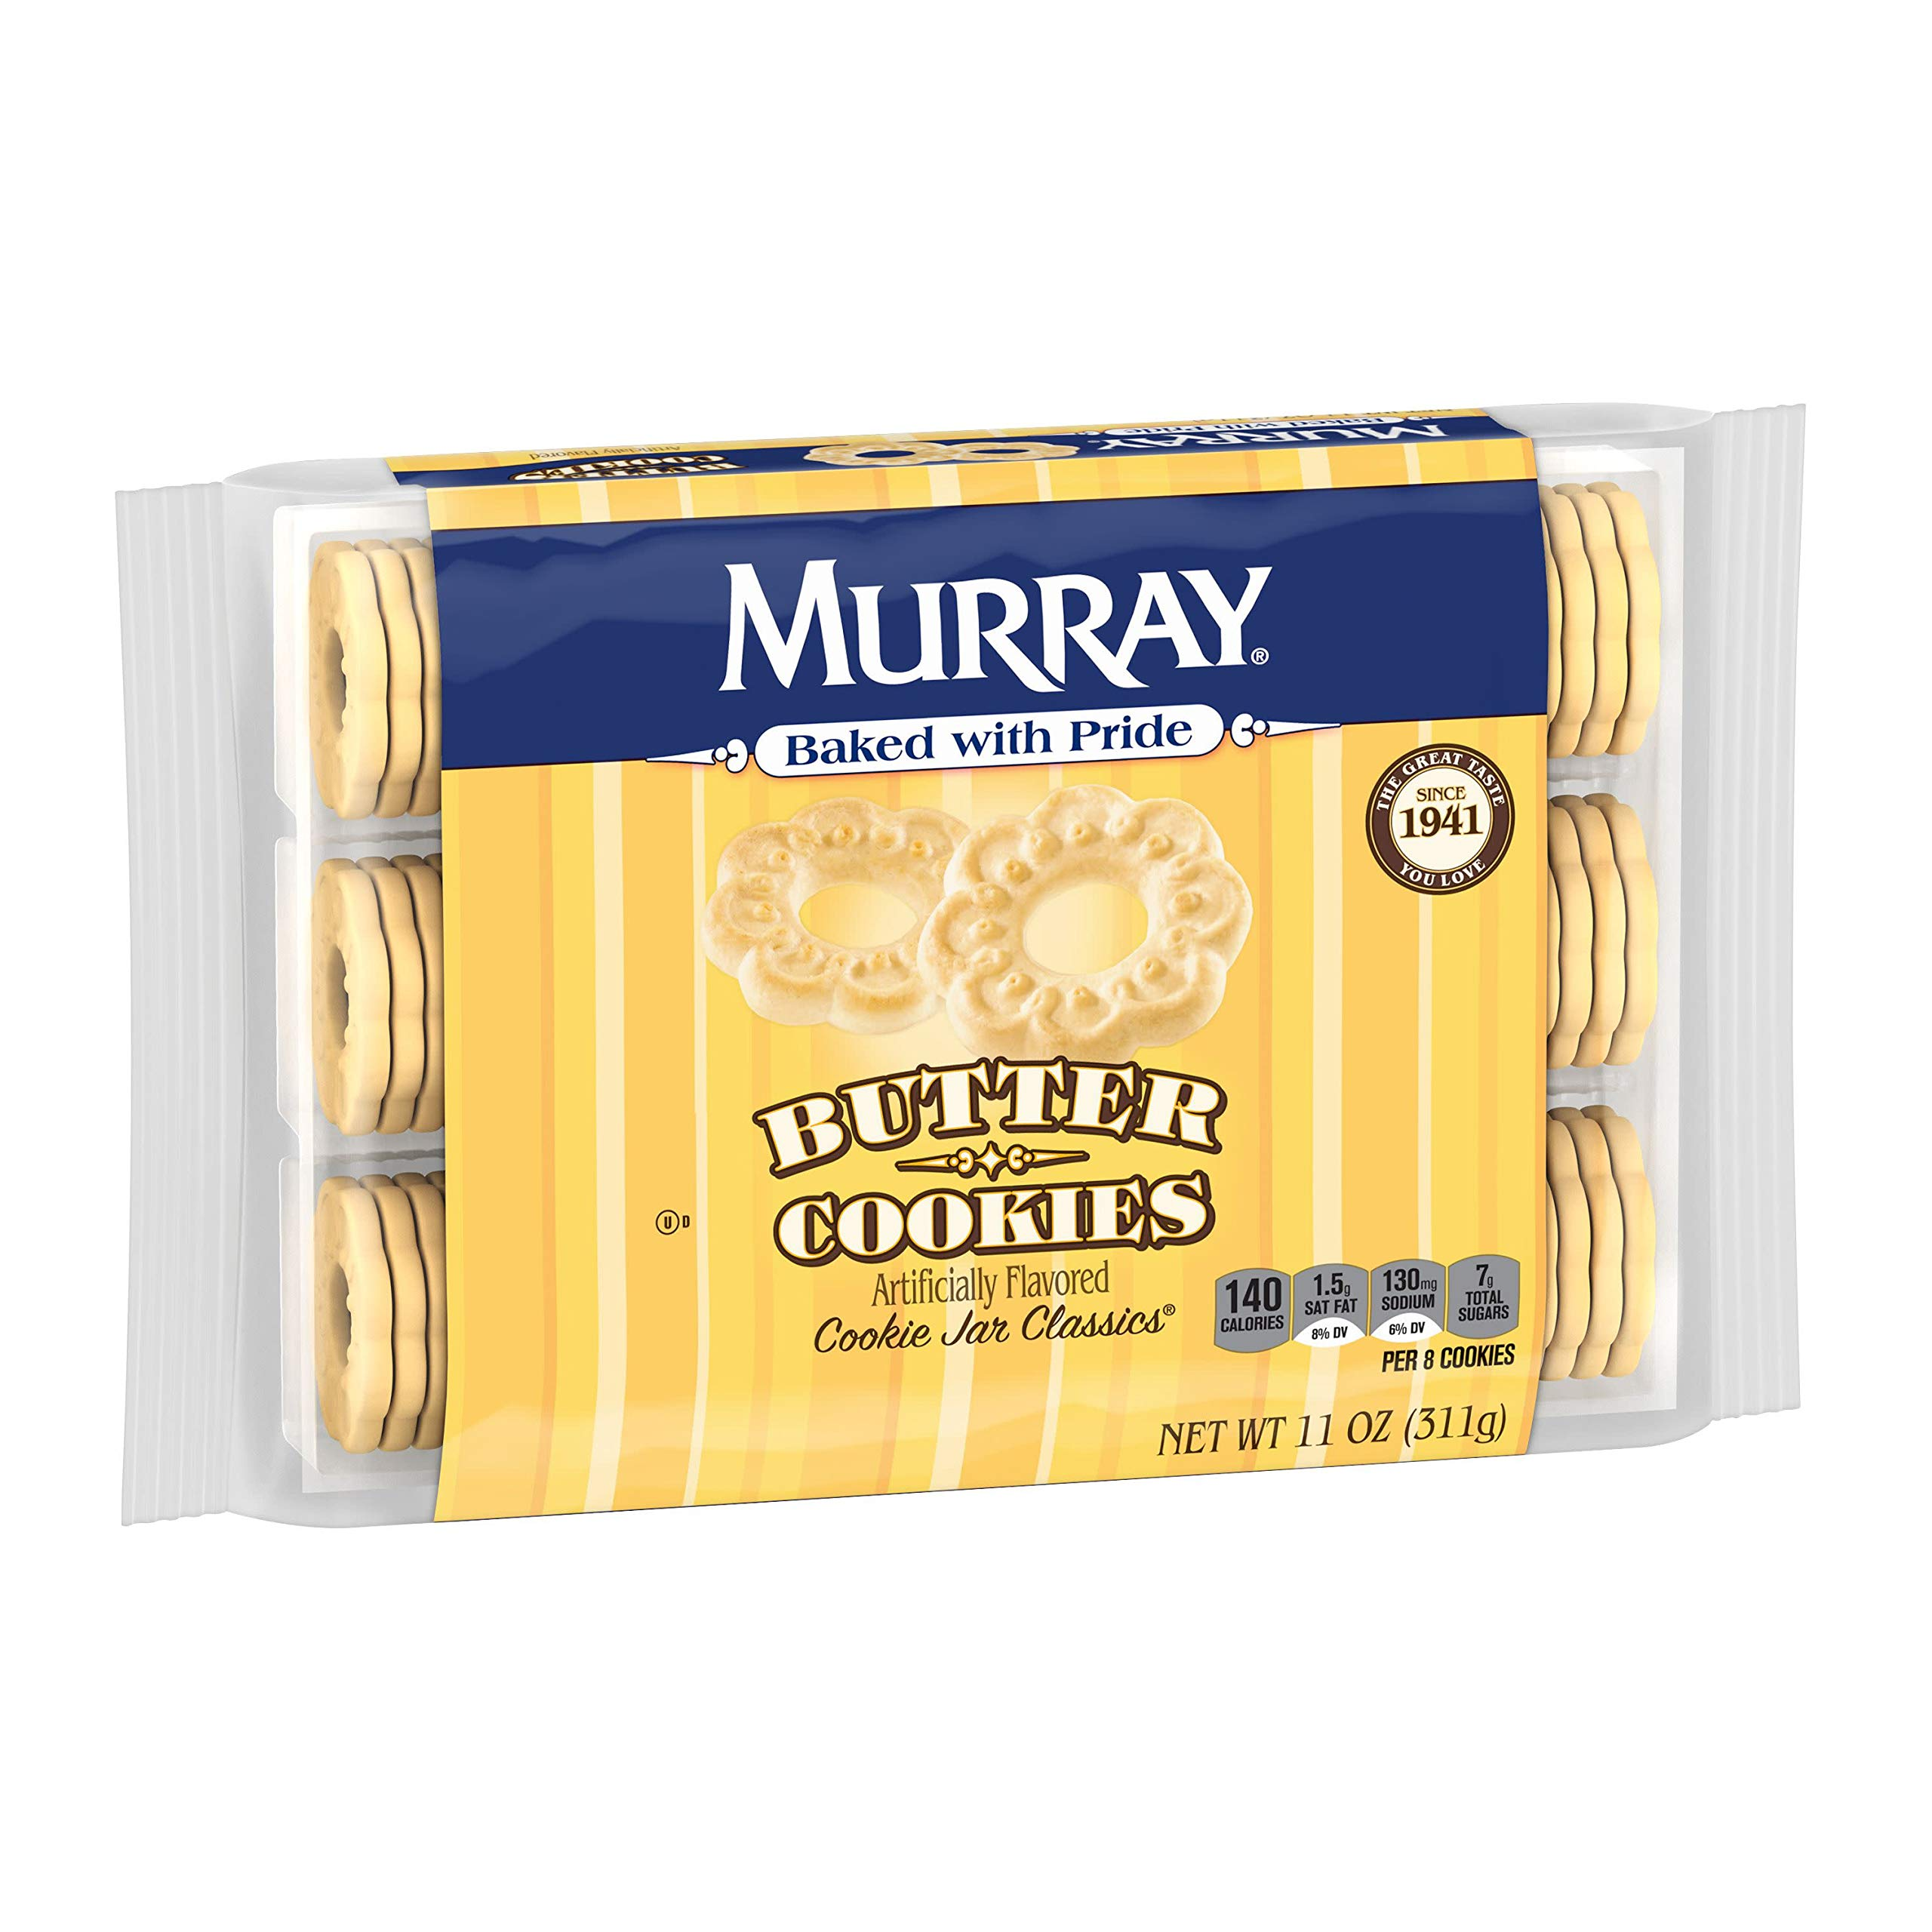 Murray Cookies, Butter, 11 oz Tray by Murray (Image #1)